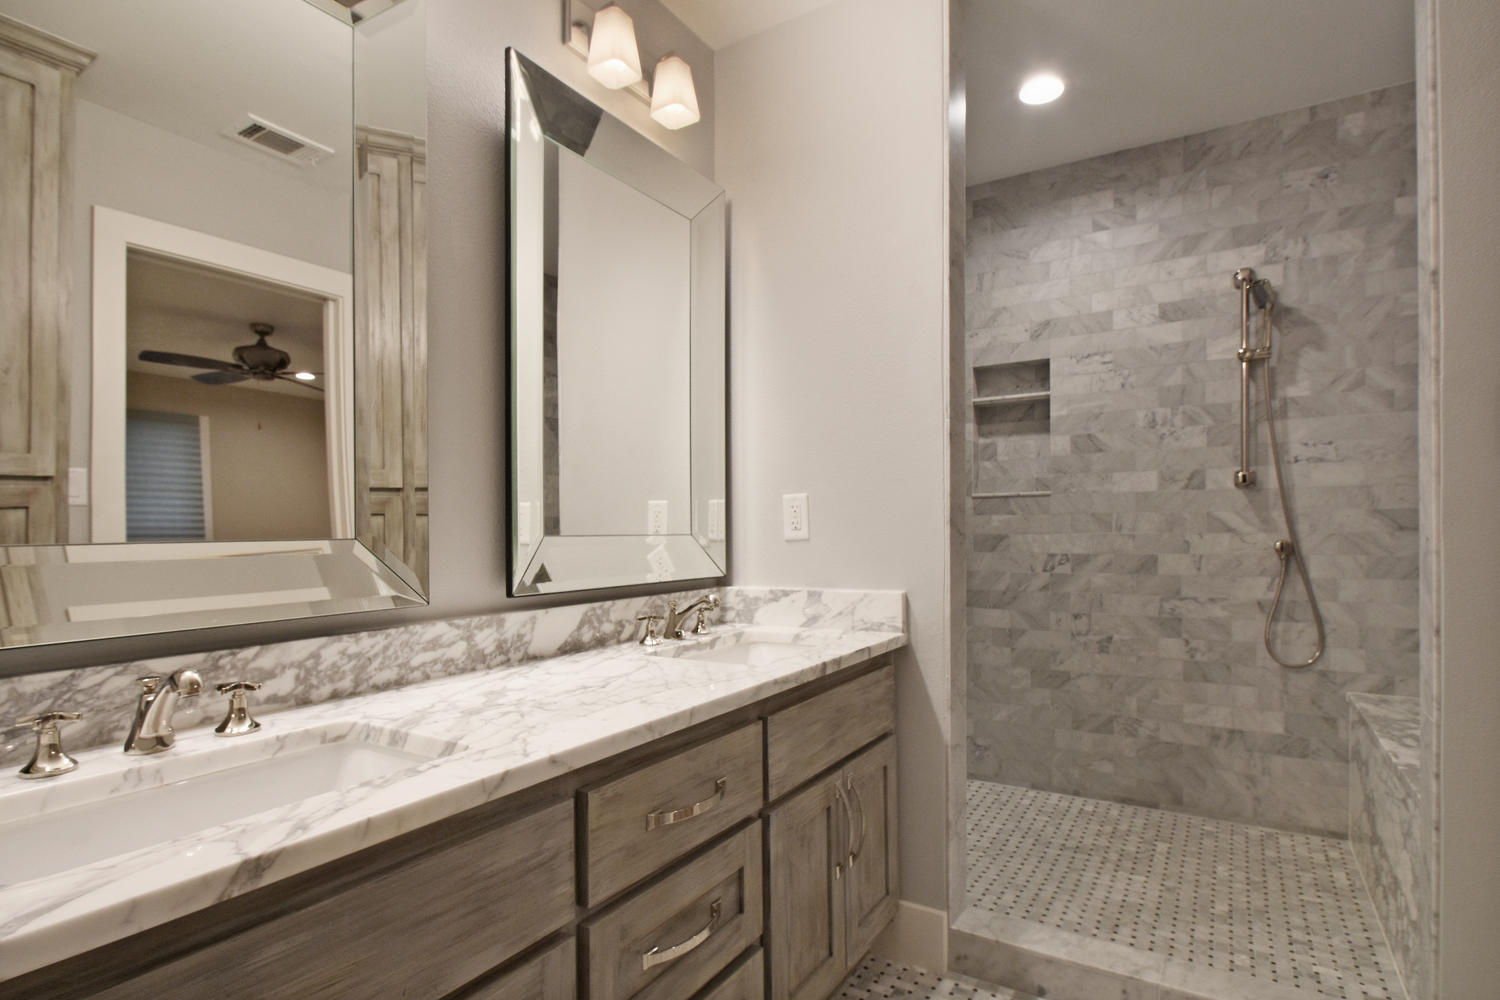 Bathroom remodel with walk-in modern shower